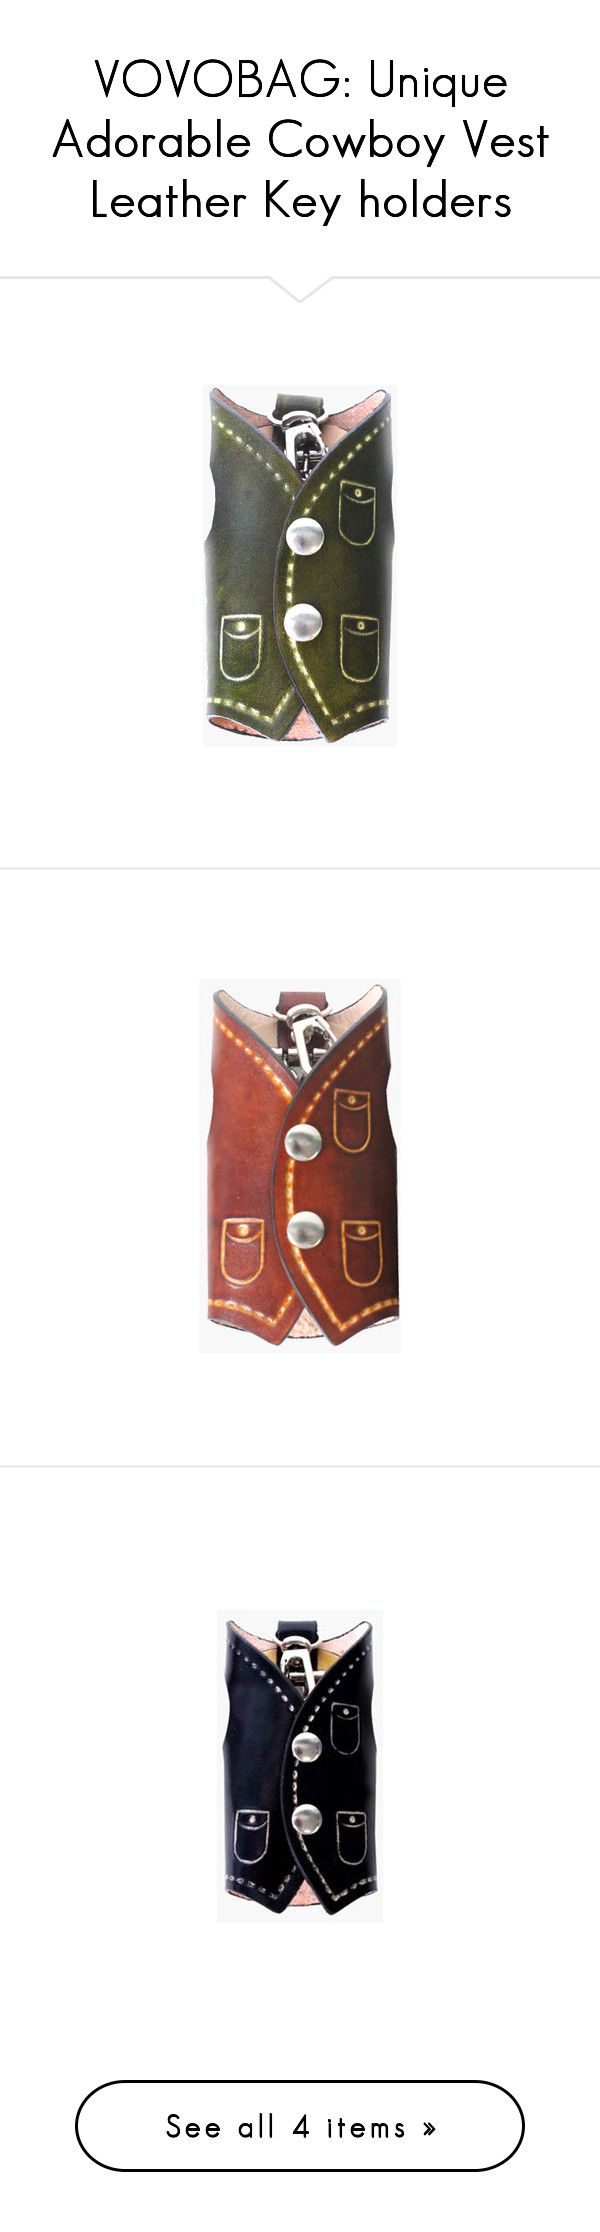 """VOVOBAG: Unique Adorable Cowboy Vest Leather Key holders"" by vovobag ❤ liked on Polyvore featuring accessories and vovobag"